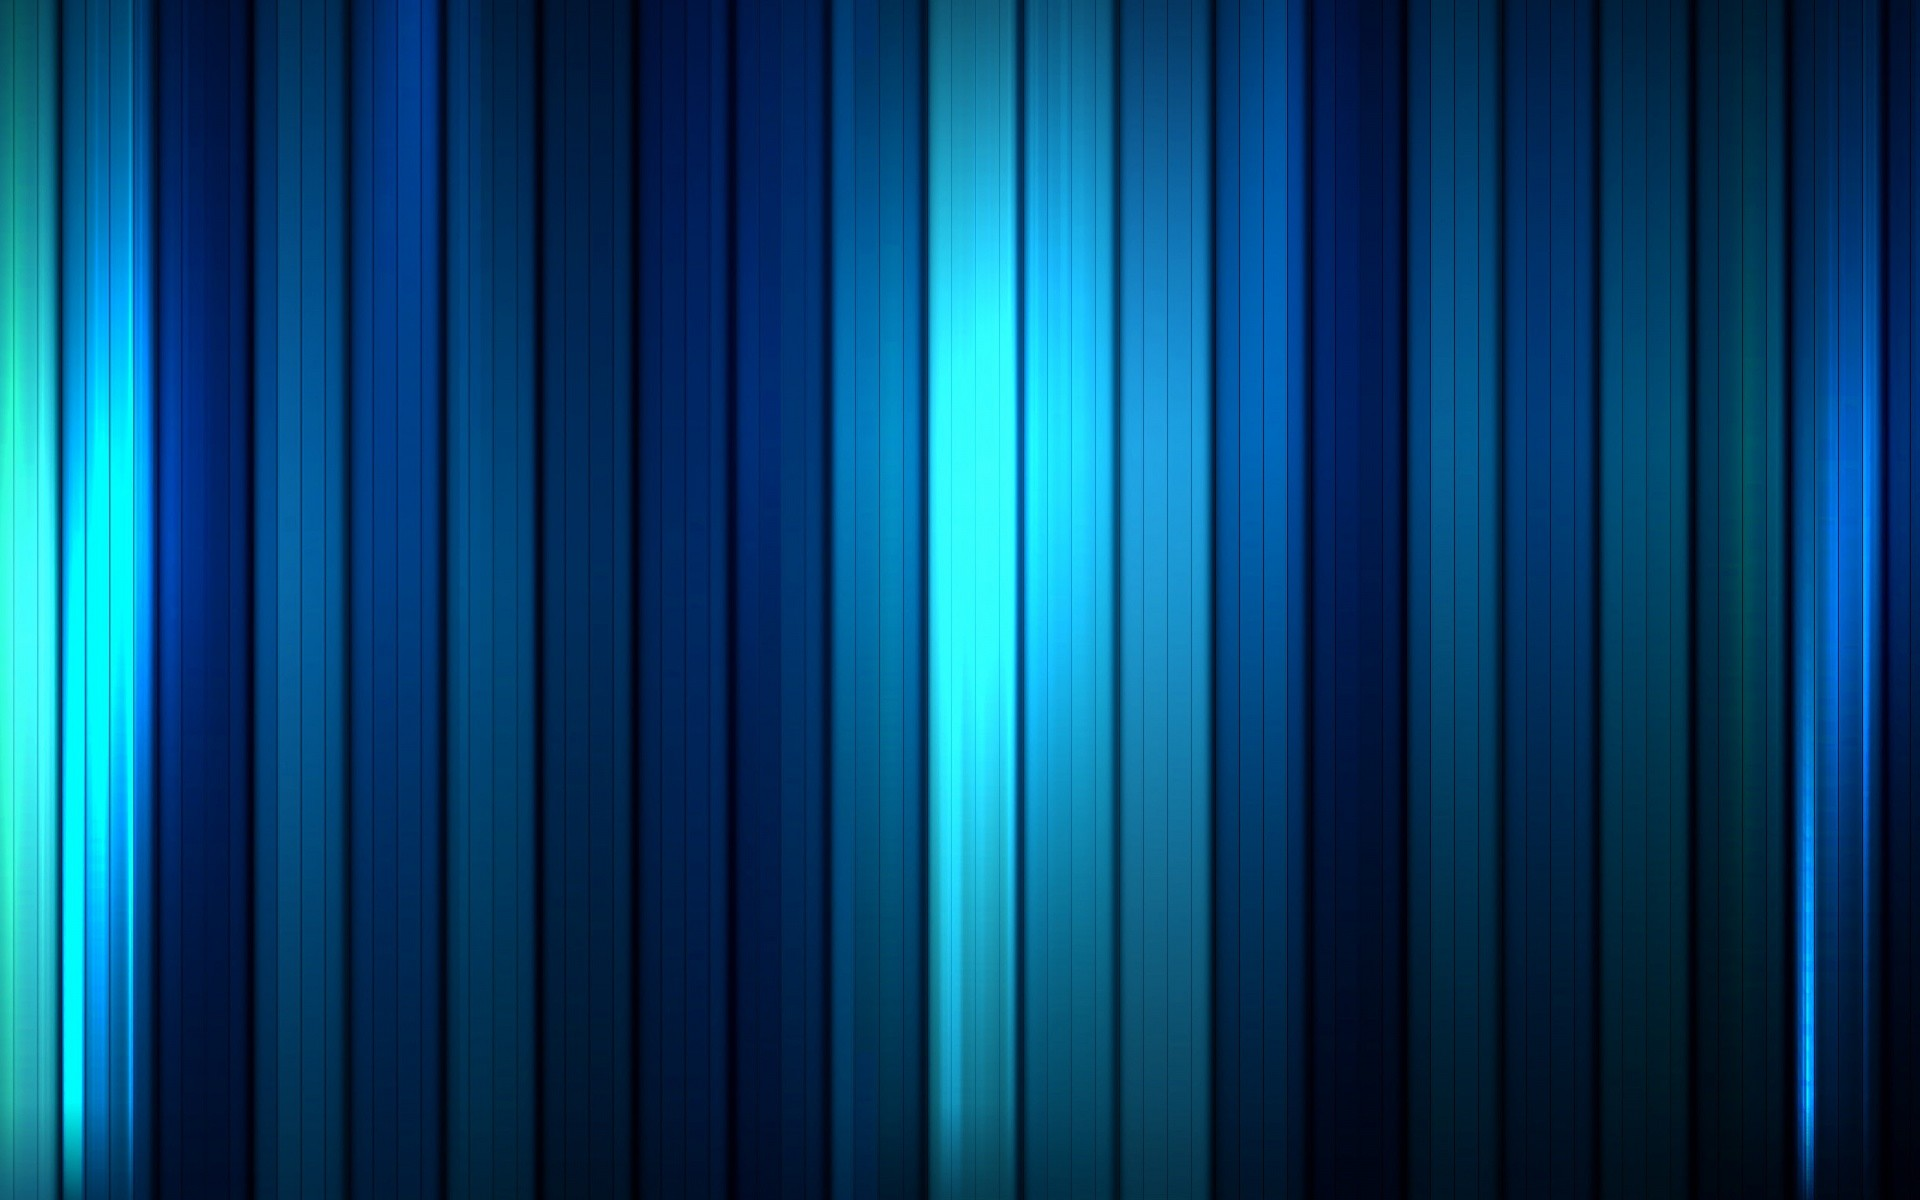 blue artistic backgrounds